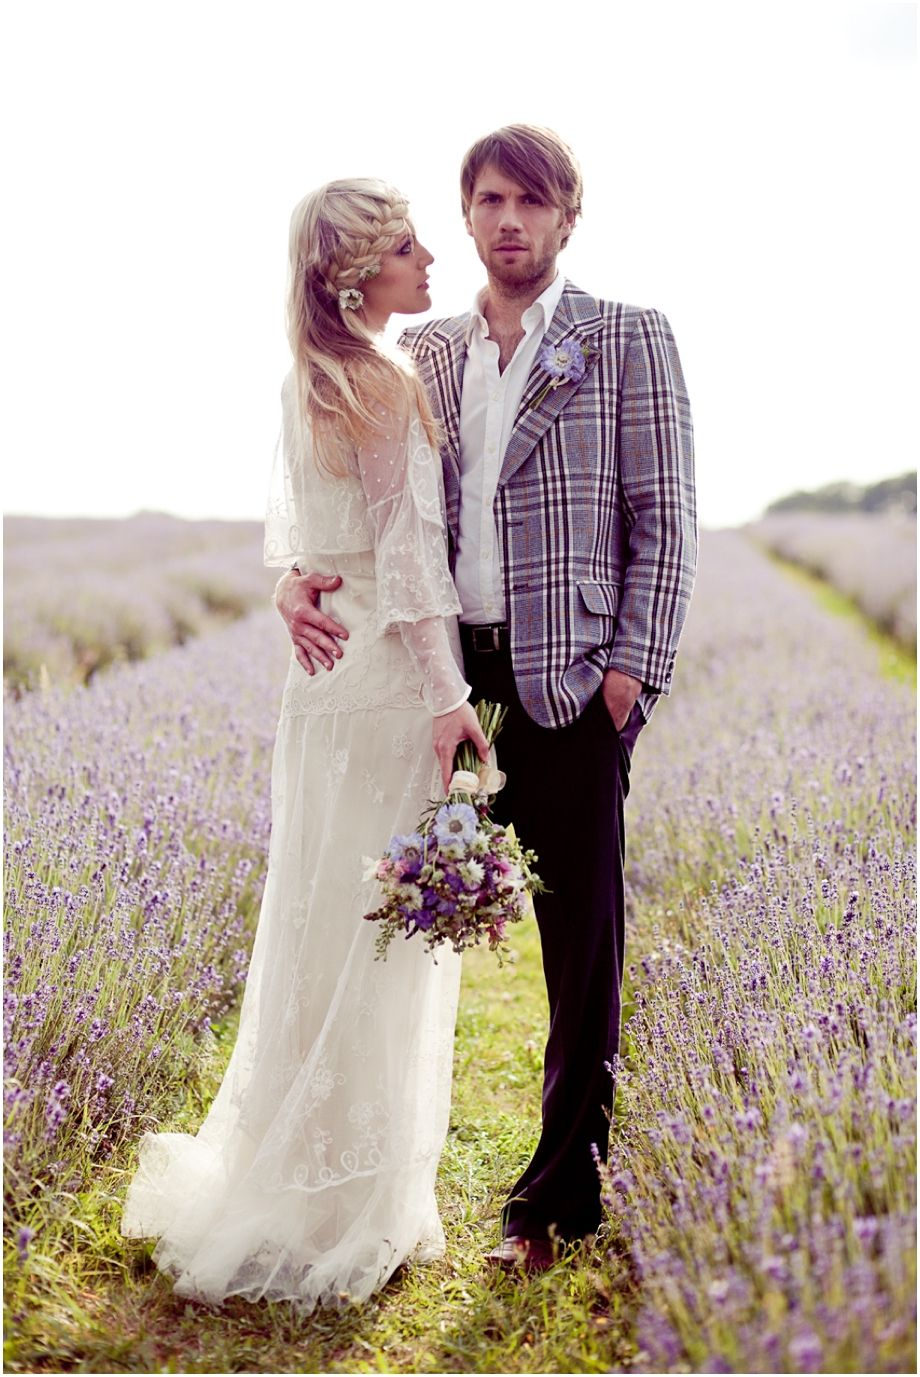 Lavender bride lawenda pinterest london bride lavender fields